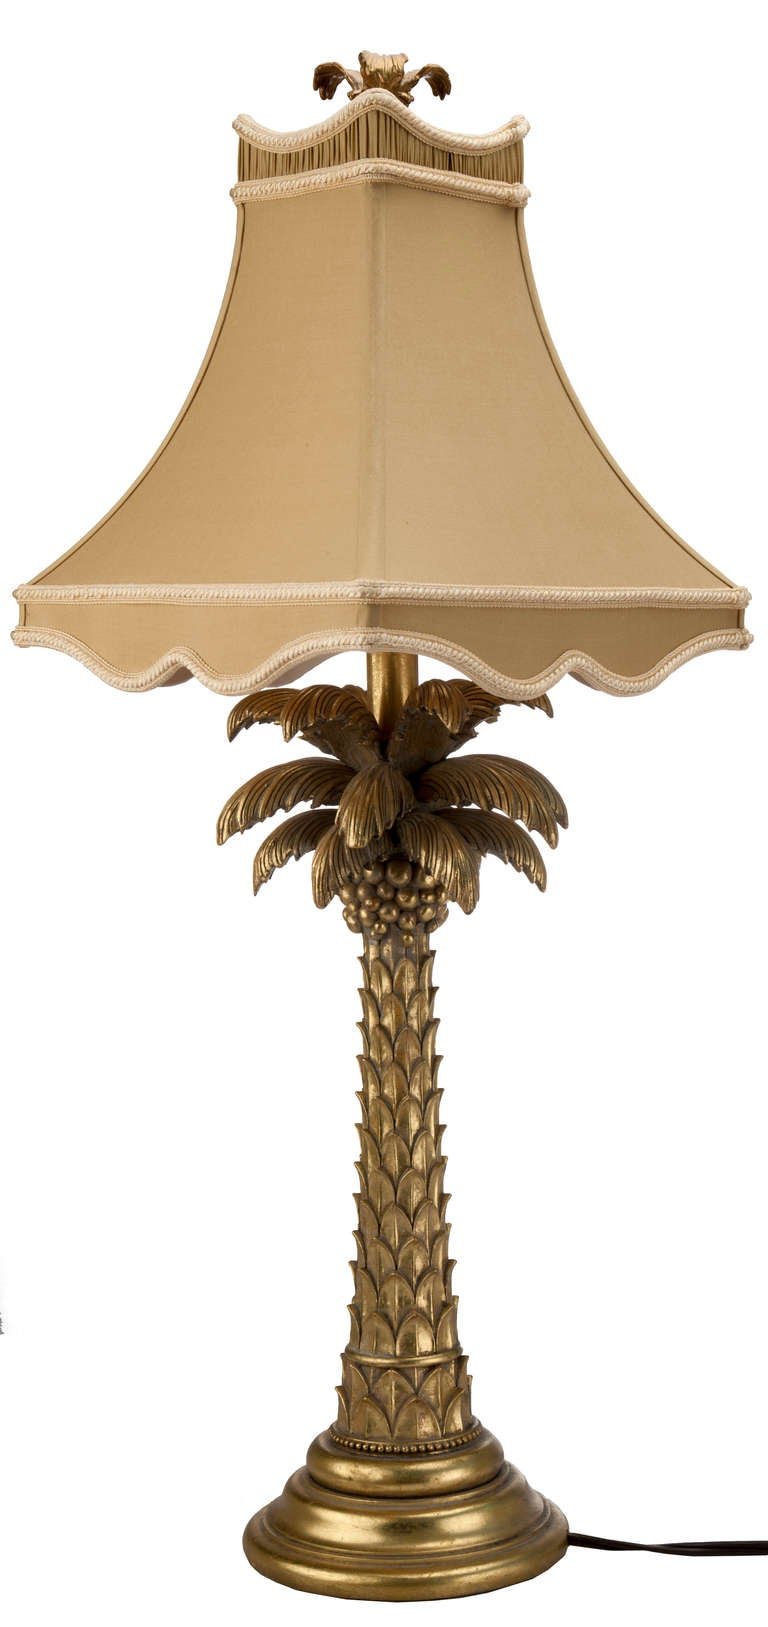 gold palm tree table lamp for sale at 1stdibs. Black Bedroom Furniture Sets. Home Design Ideas